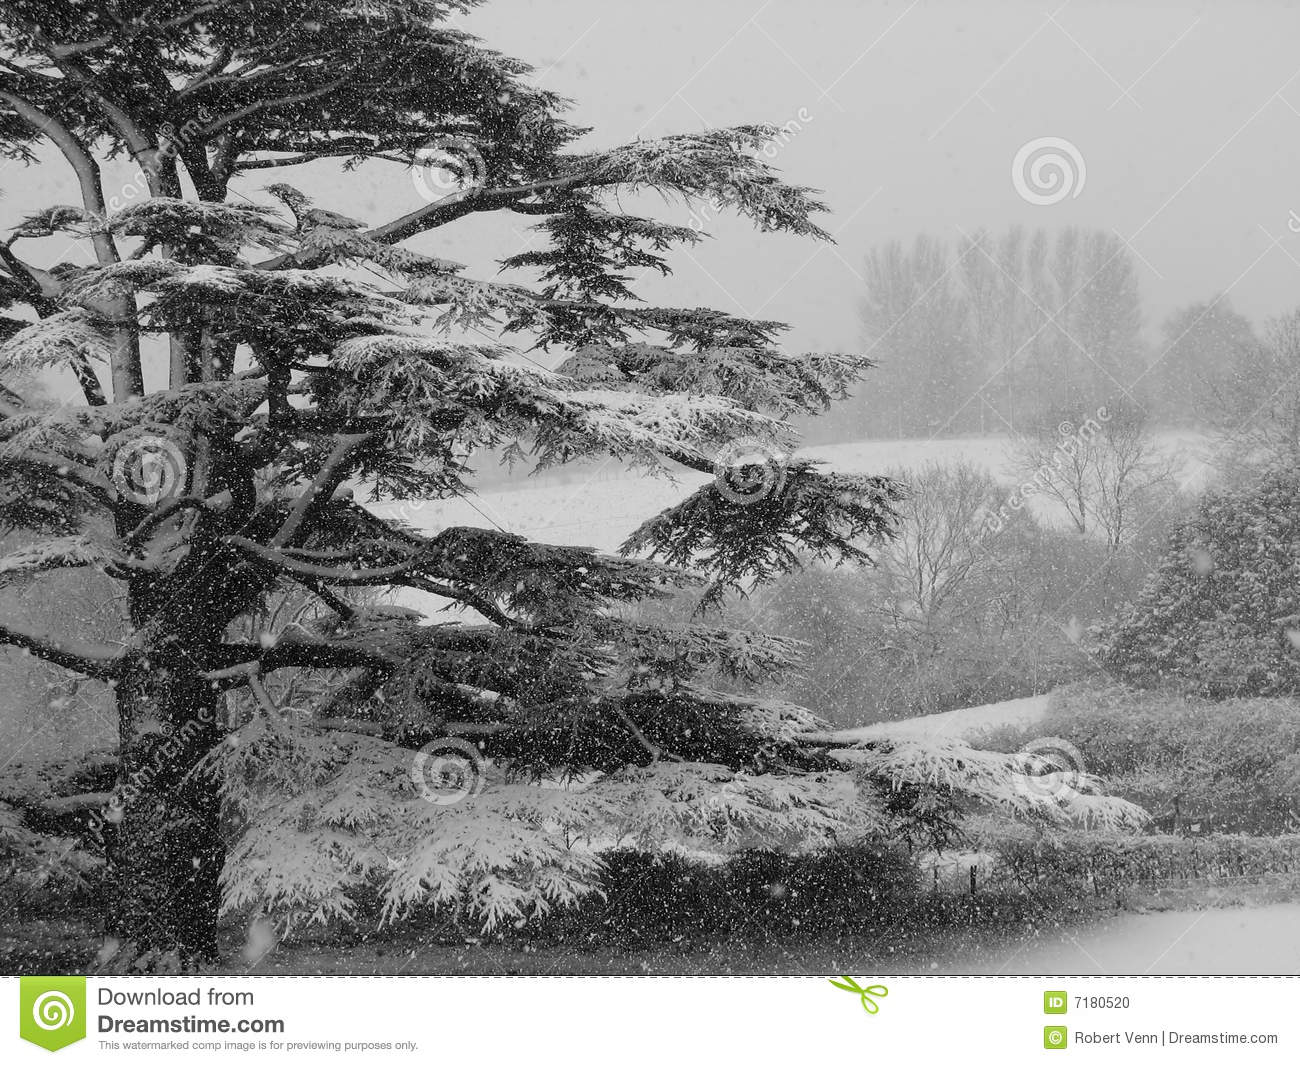 Temp te de neige de c dre photo stock image 7180520 - Cedre bleu du liban ...